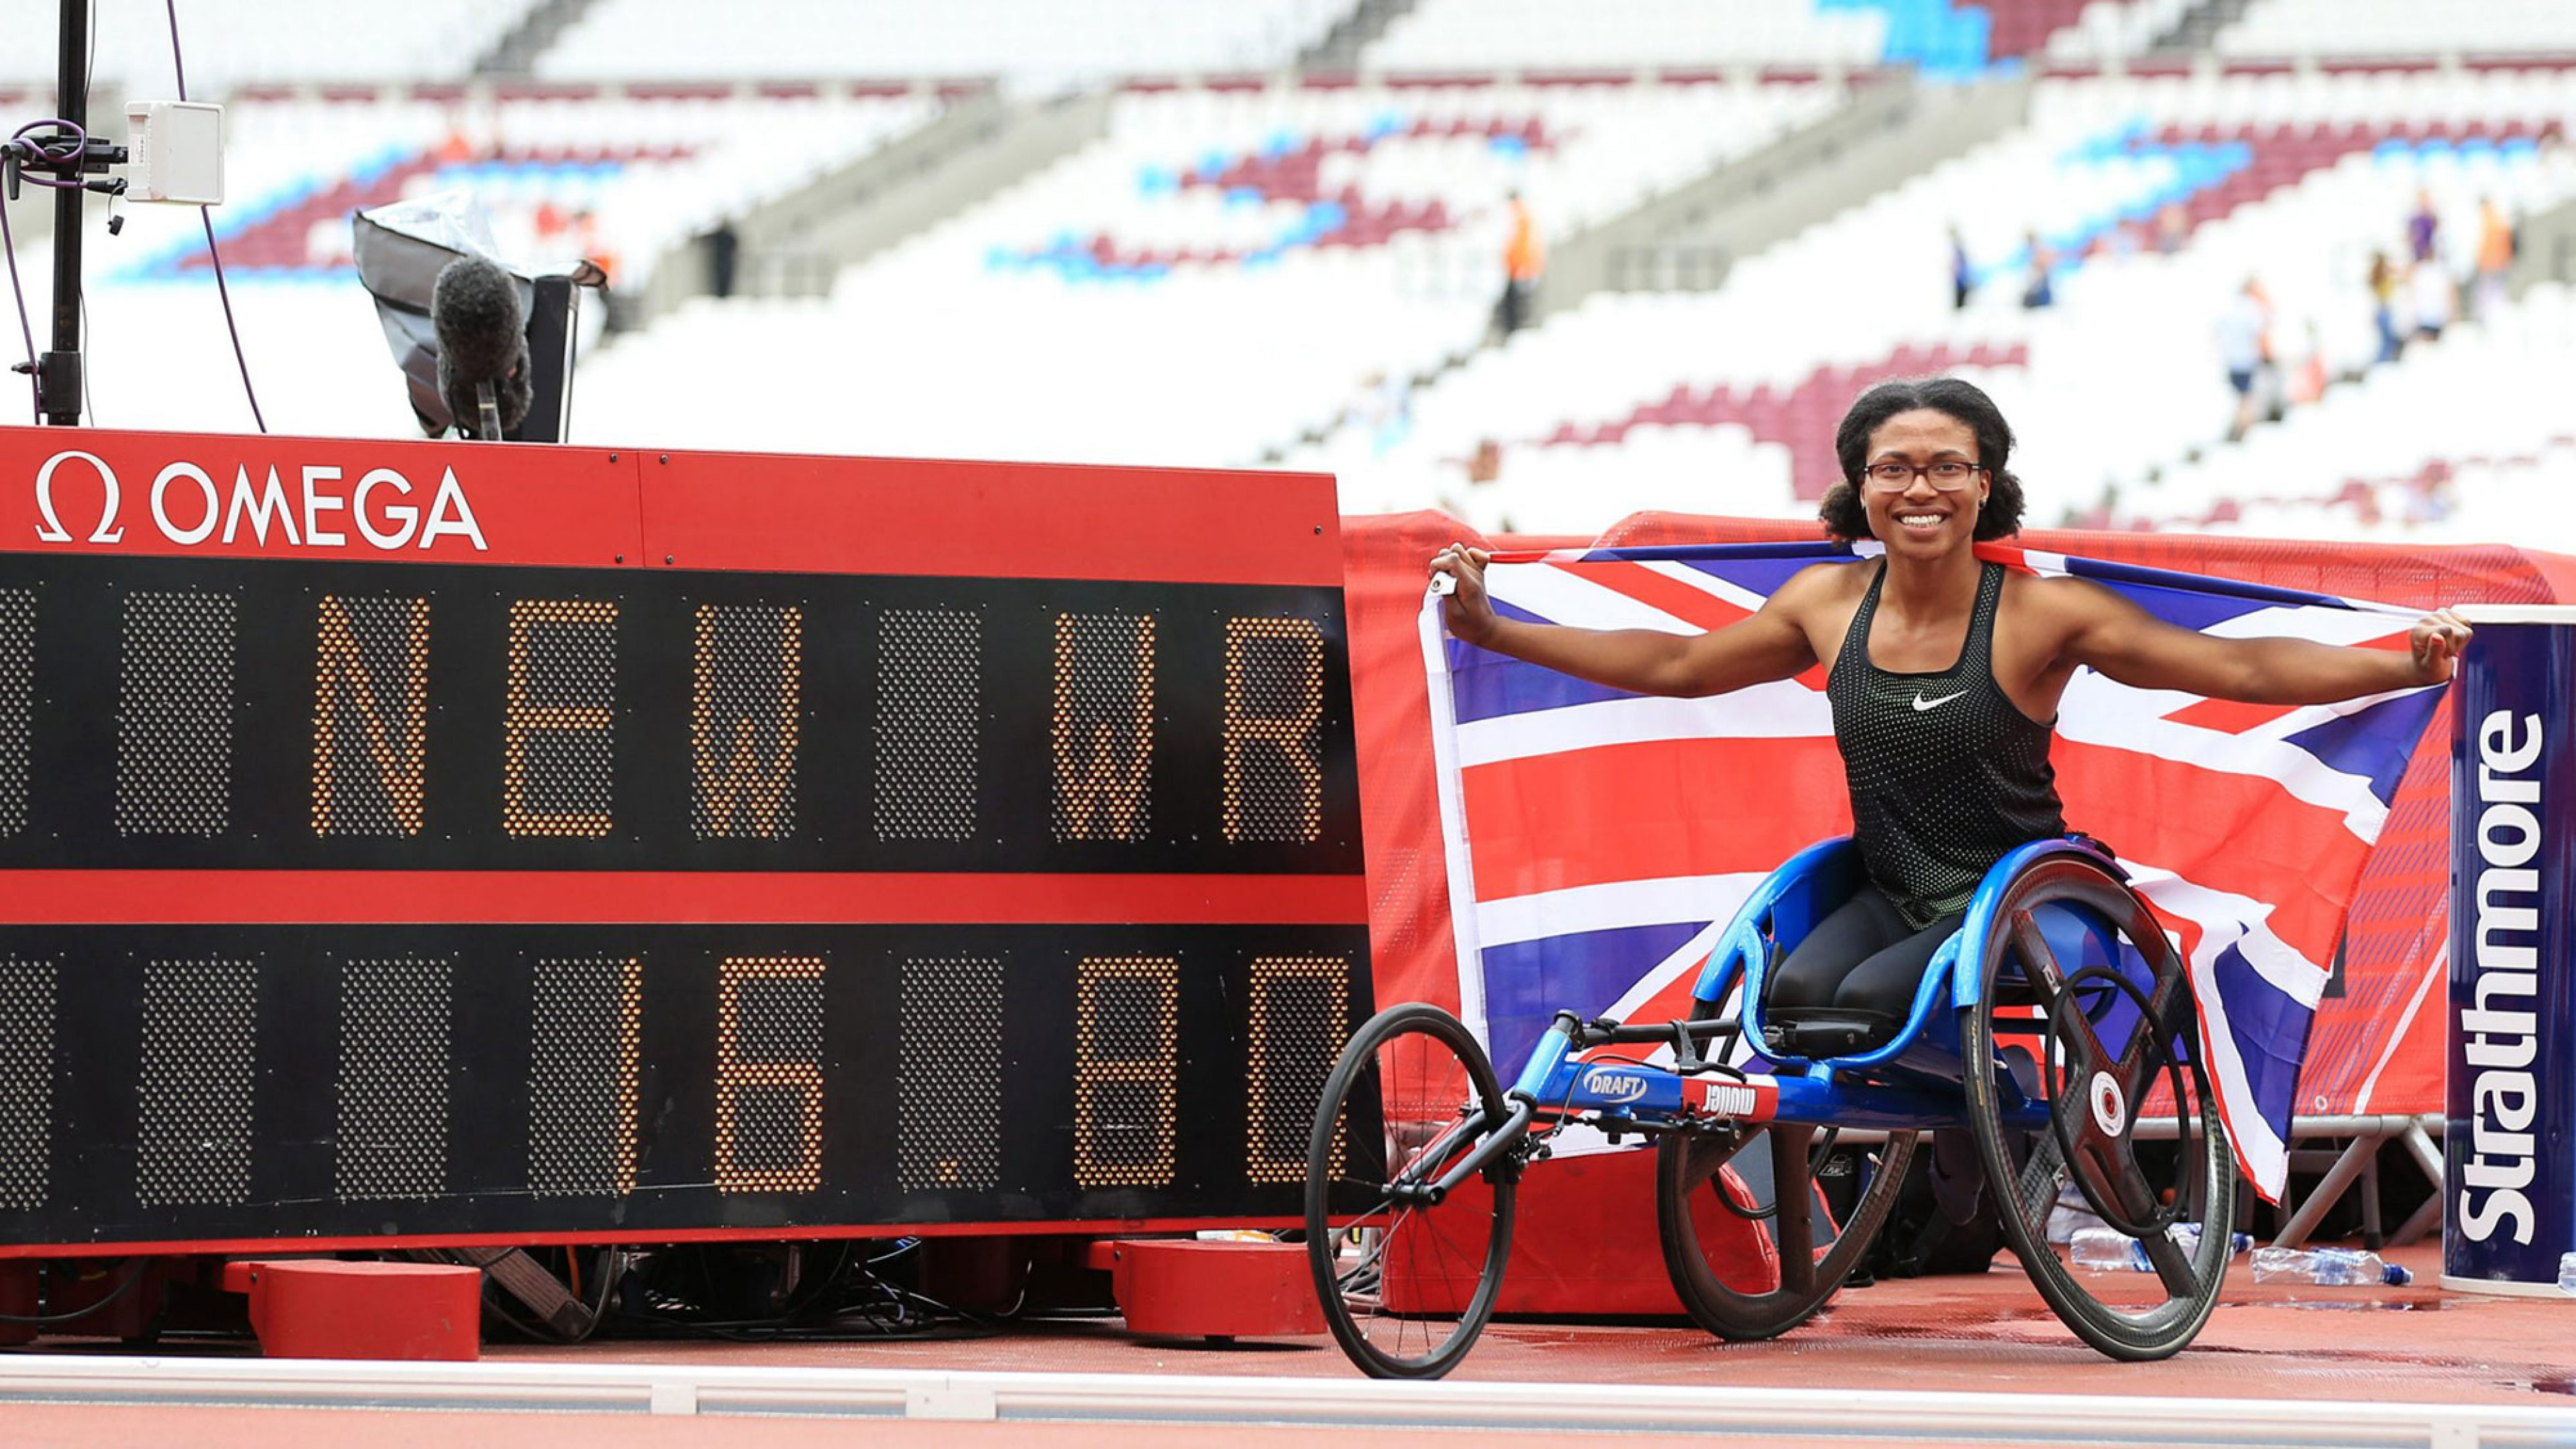 LONDON, ENGLAND - JULY 22:  Kare Adenegan of Great Britain poses for a photo after setting the new World Record following the Women's T34 100m during Day Two of the Muller Anniversary Games at London Stadium on July 22, 2018 in London, England.  (Photo by Stephen Pond - British Athletics/British Athletics via Getty Images)